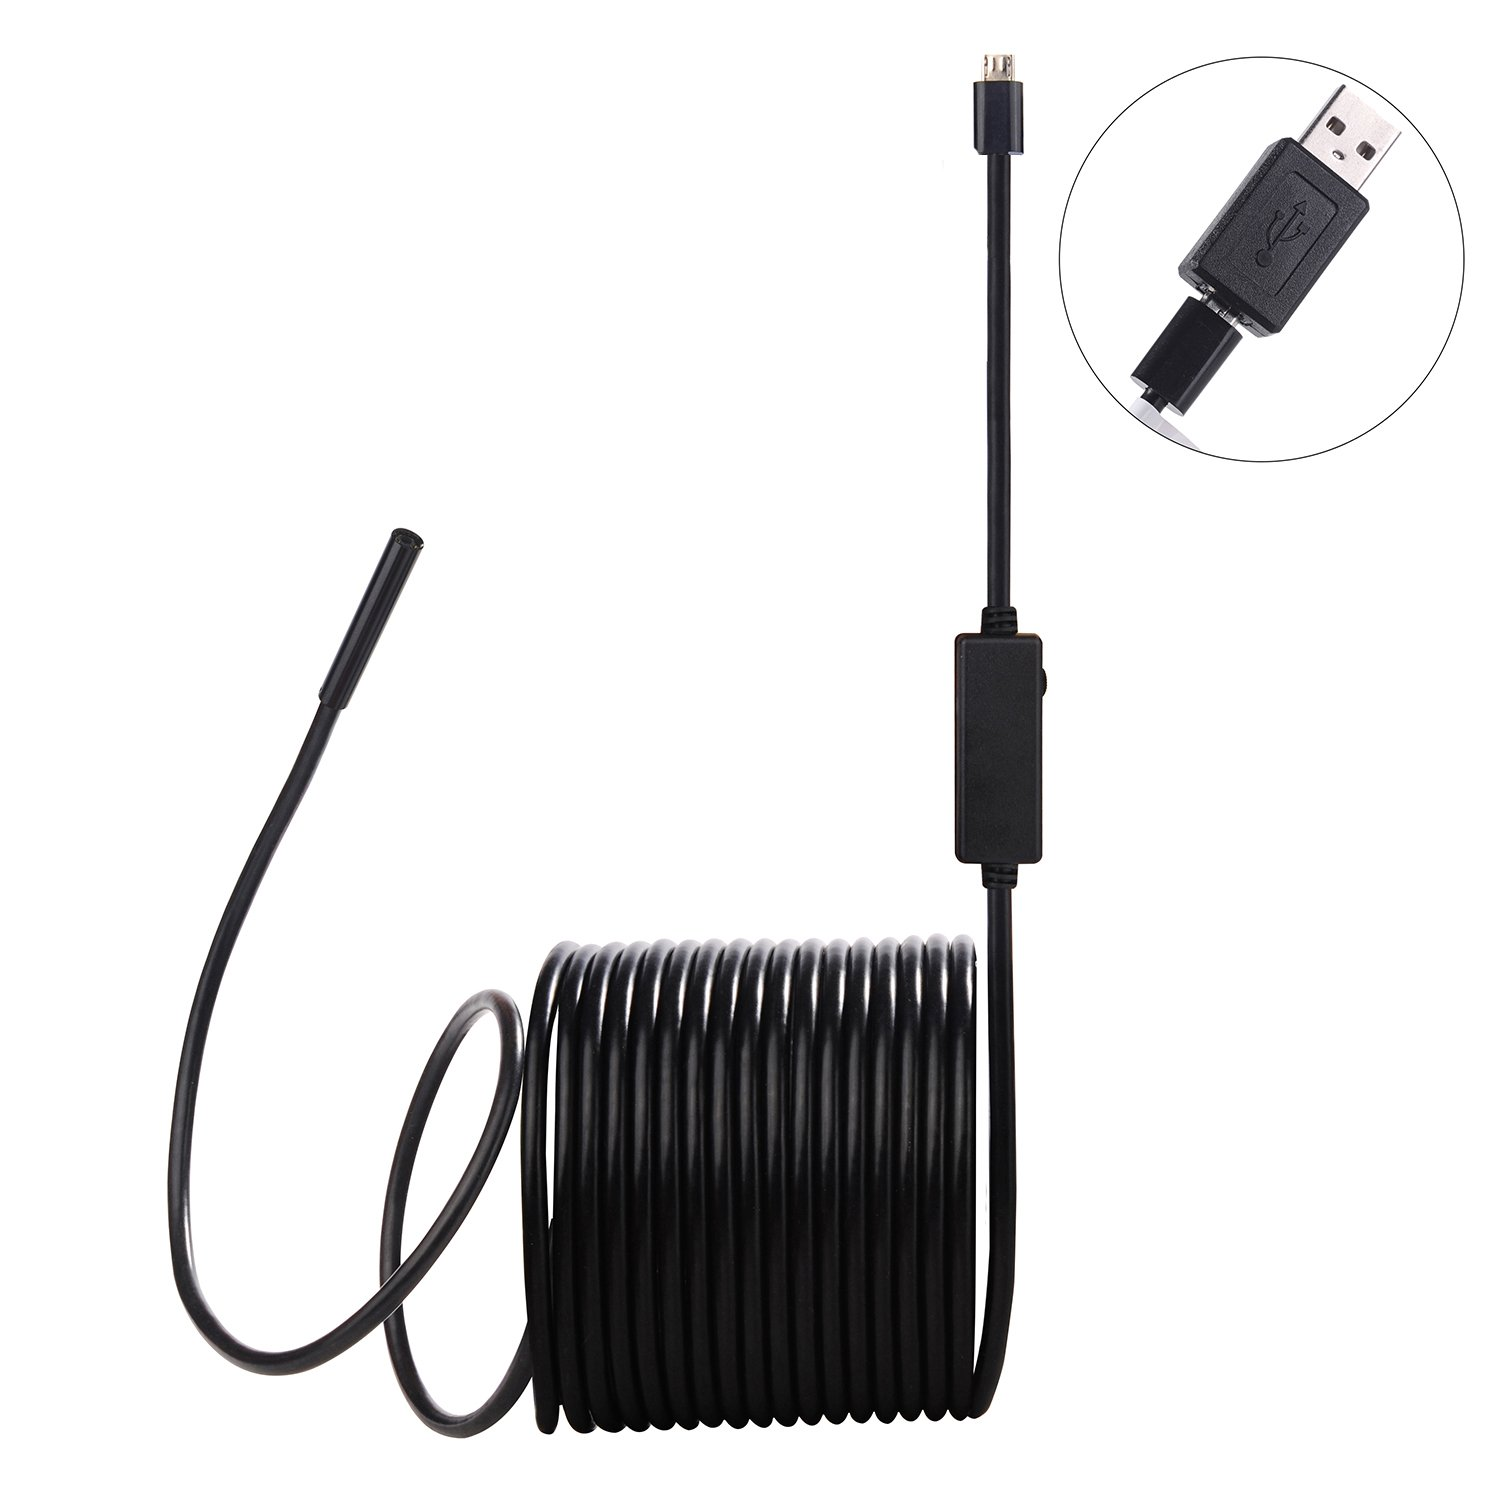 Williamson Santa Mobile Phone Endoscope, With USB adapter Endoscope, 6 Adjustable LED Lights, 5.5mm Outer Diameter Waterproof Snake Camera Suitable for Mobile Phones and Operating System Computer - Bl